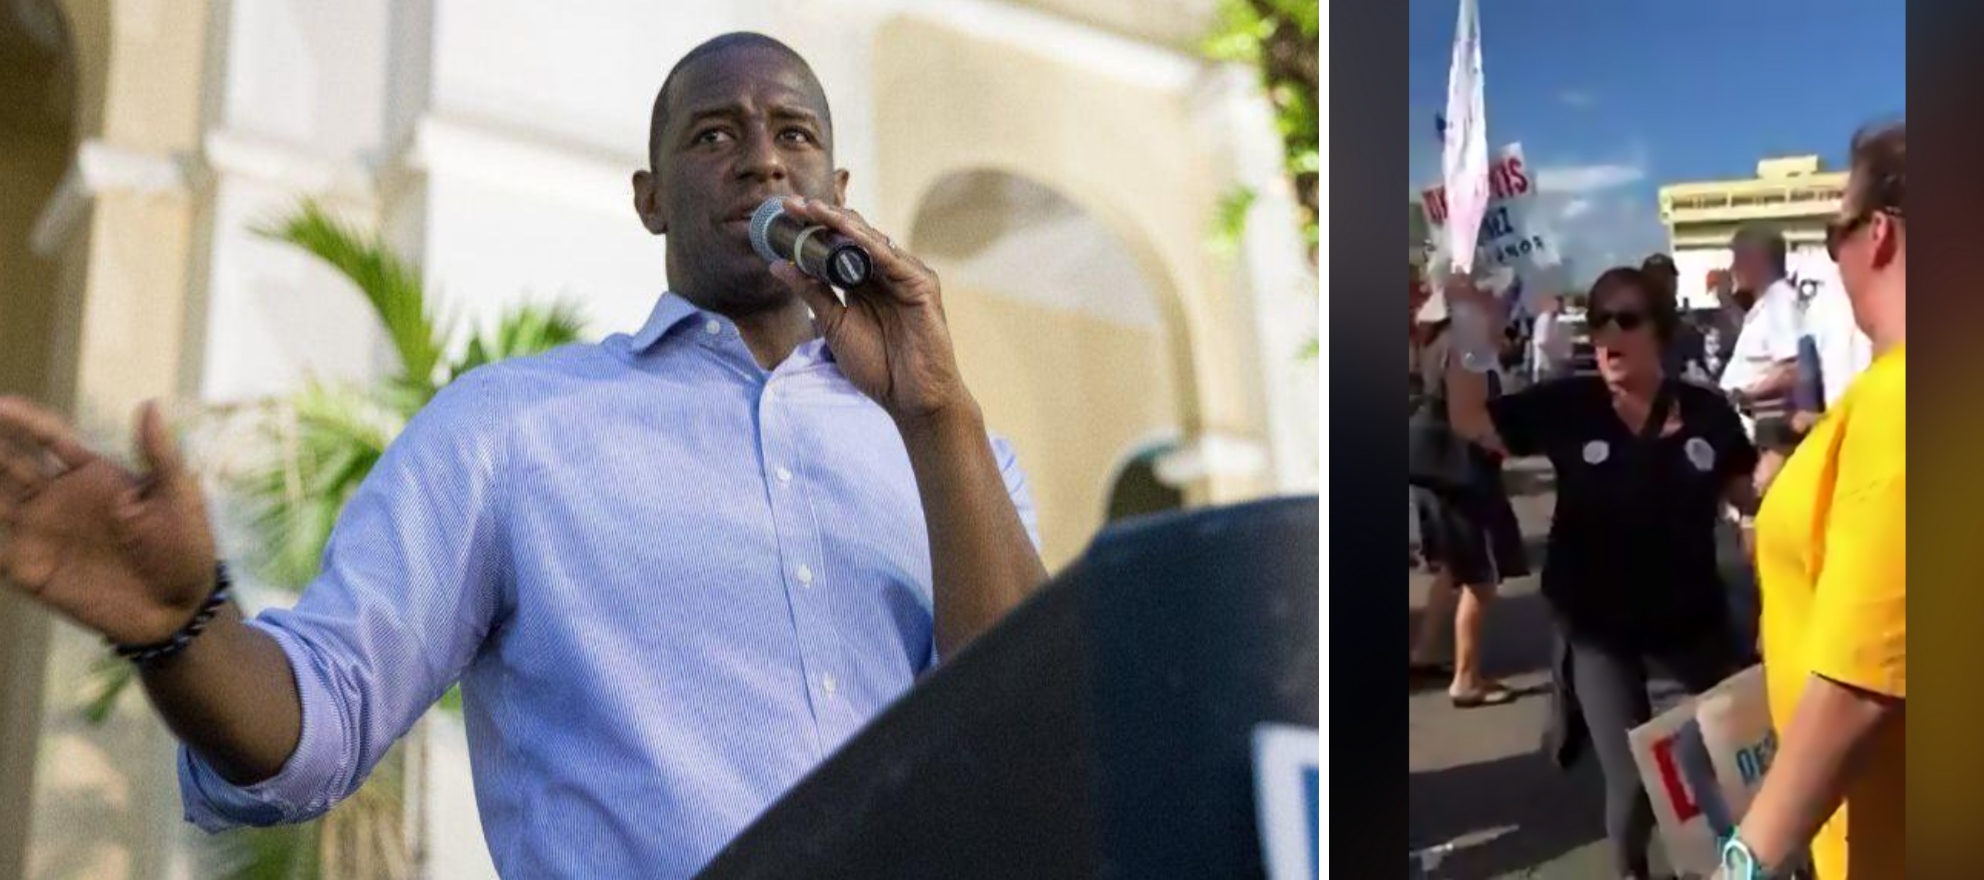 Agent fired after mocking Andrew Gillum supporters in viral video